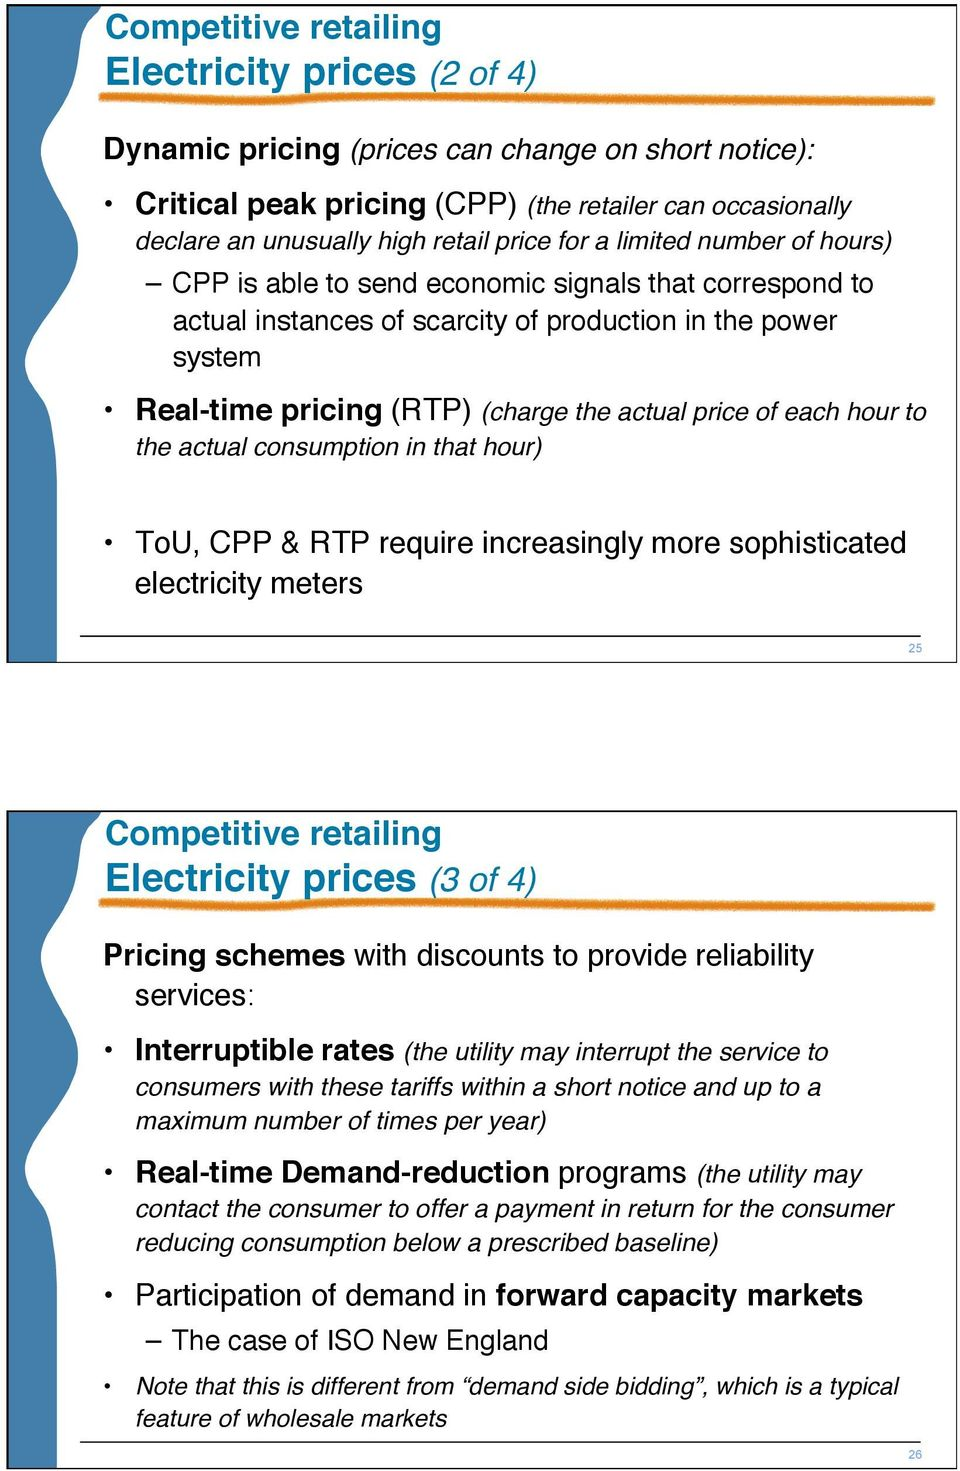 price of each hour to the actual consumption in that hour) ToU, CPP & RTP require increasingly more sophisticated electricity meters 25 Competitive retailing Electricity prices (3 of 4) Pricing